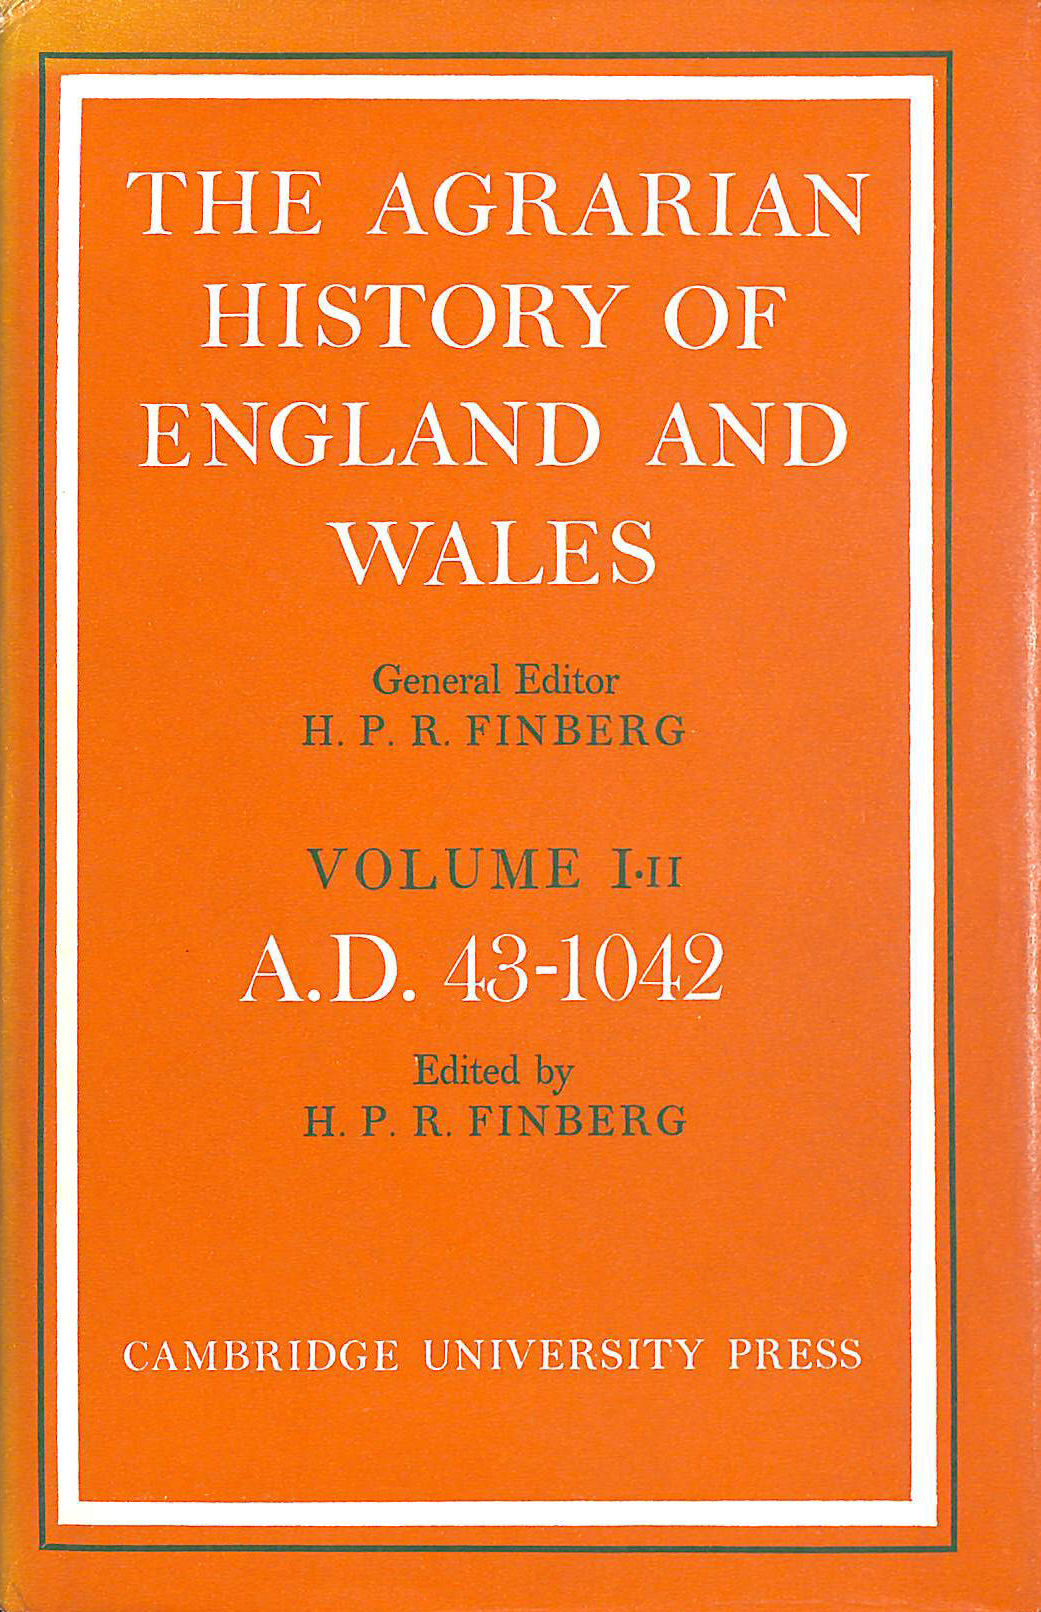 Agrarian History of England and Wales Volume 1:11 (A.D.43-1042), Finberg, H. P. R.